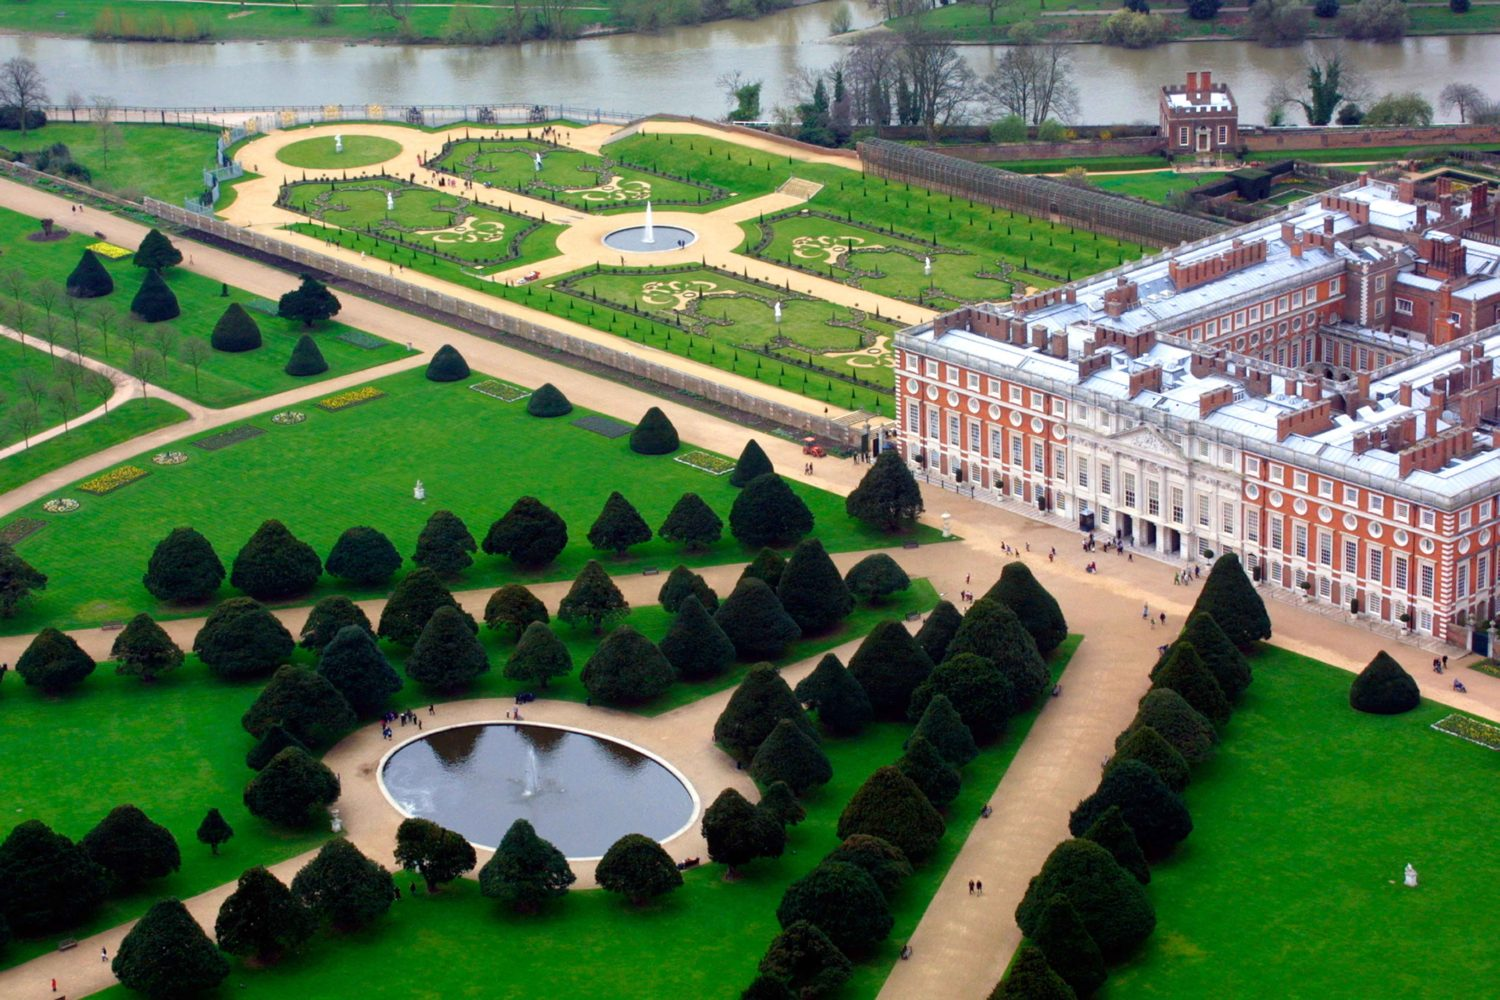 ADDED ATTRACTIONS AT THE 2014 CONCOURS OF ELEGANCE AT HAMPTON COURT PALACE